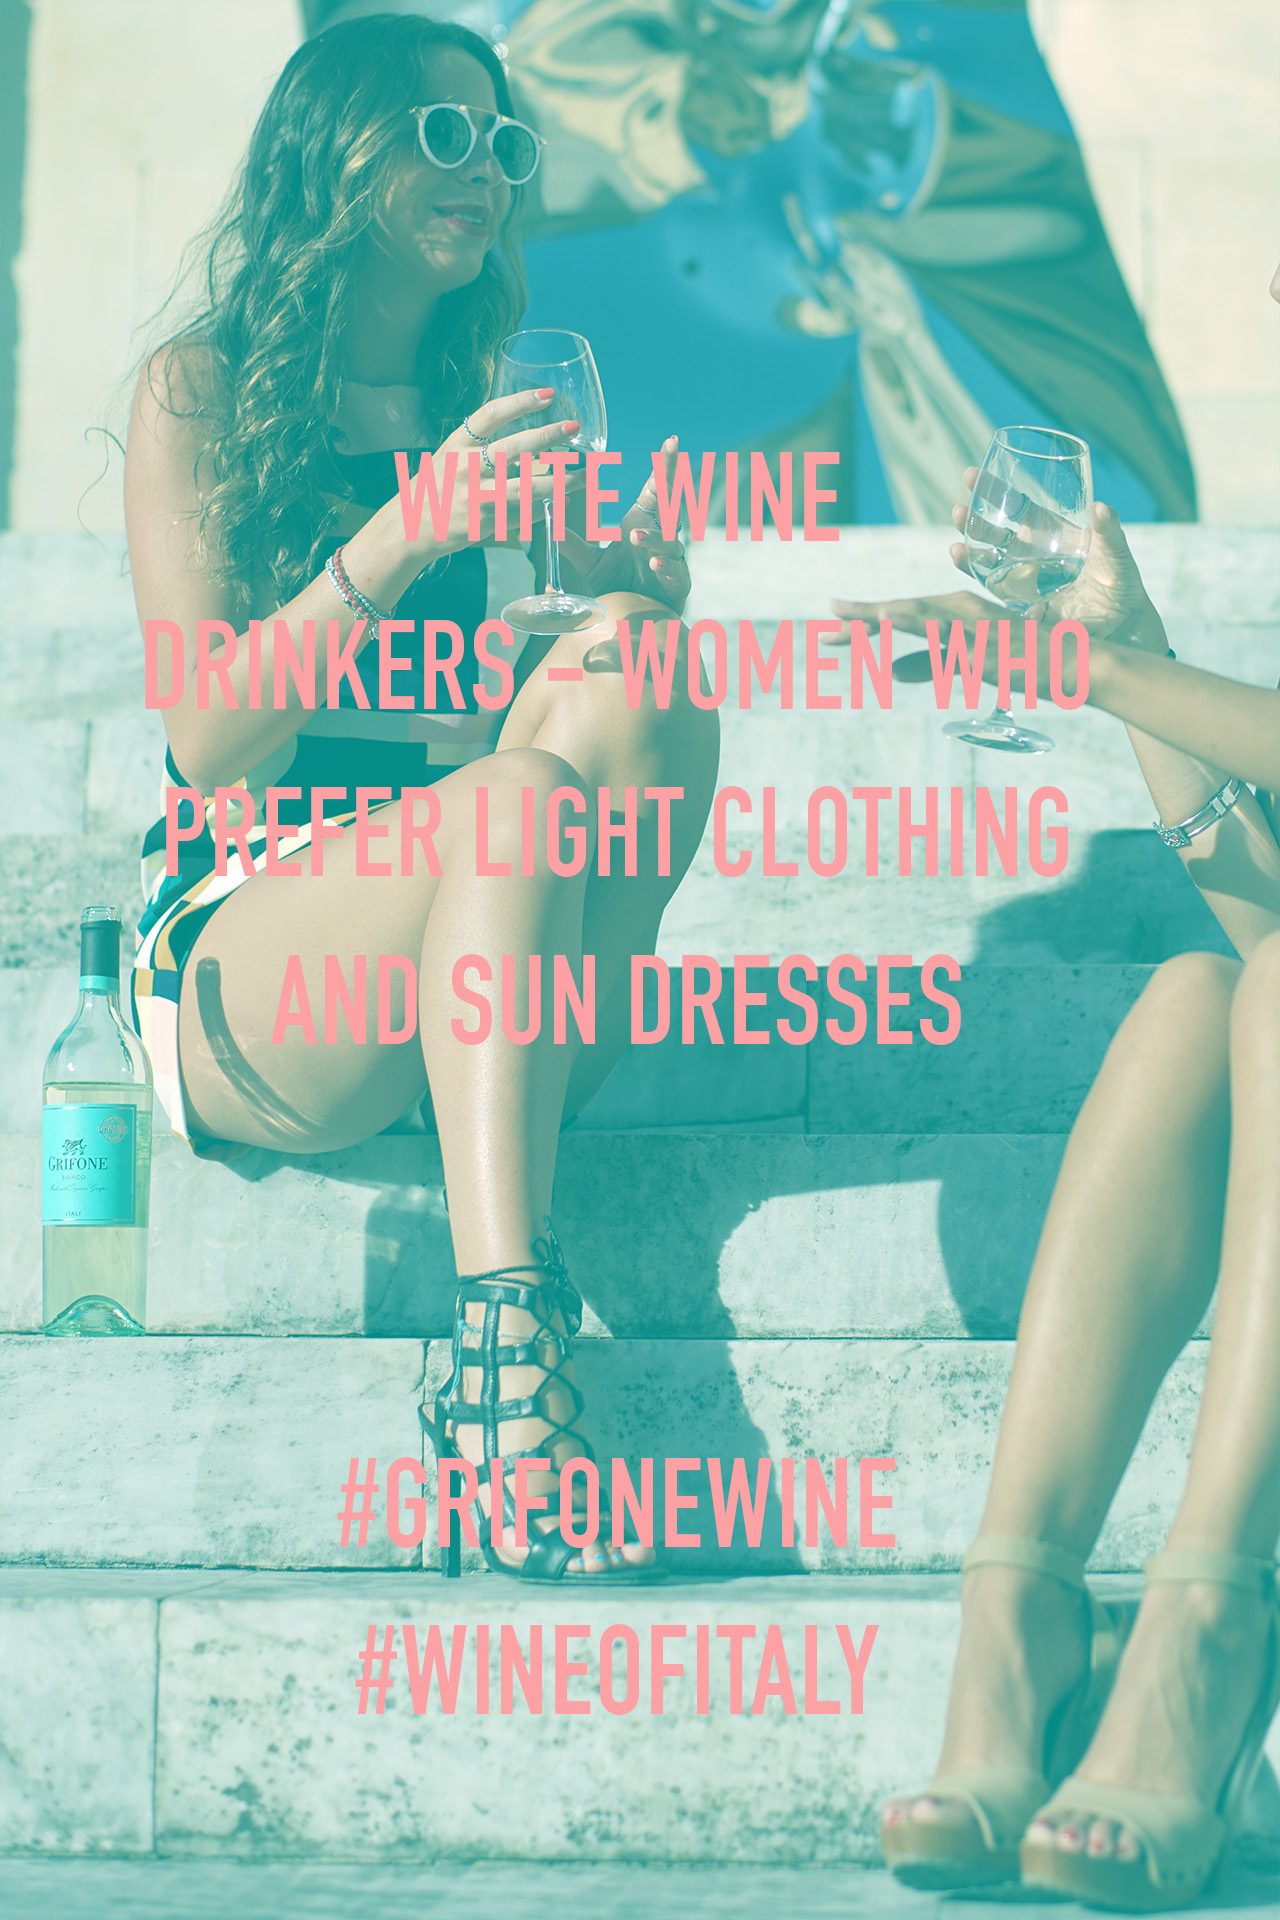 WOMEN WHO PREFER LIGHT CLOTHING #GRIFONEWINE